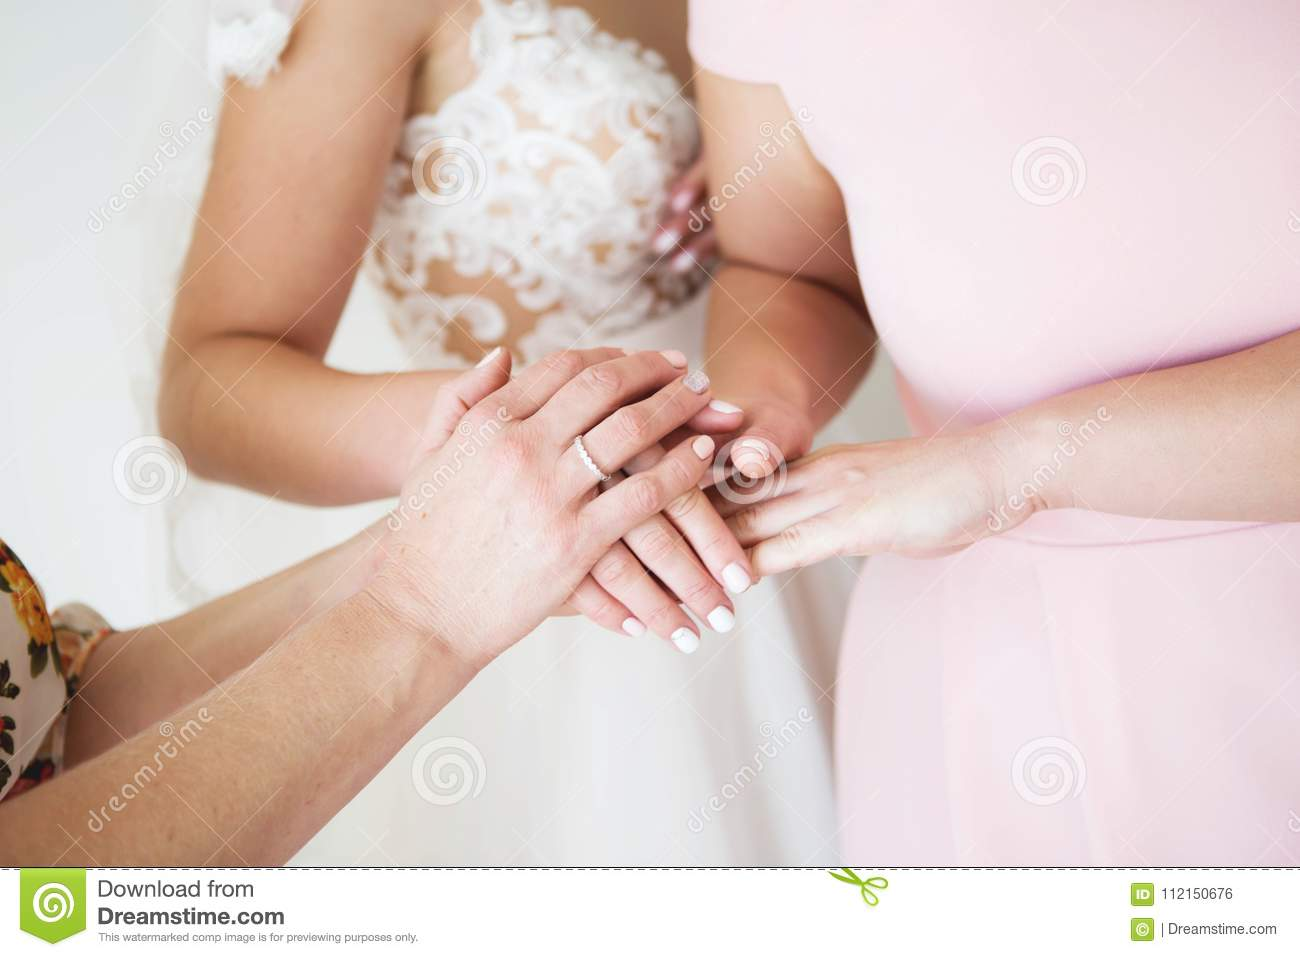 Bride With Mother Wedding Hand Wedding Blessing Of The Bride Morning Of The Bride Hand Of The Bride And Mother Stock Photo Image Of Blessing Brides 112150676,Party Dress For Wedding Guest